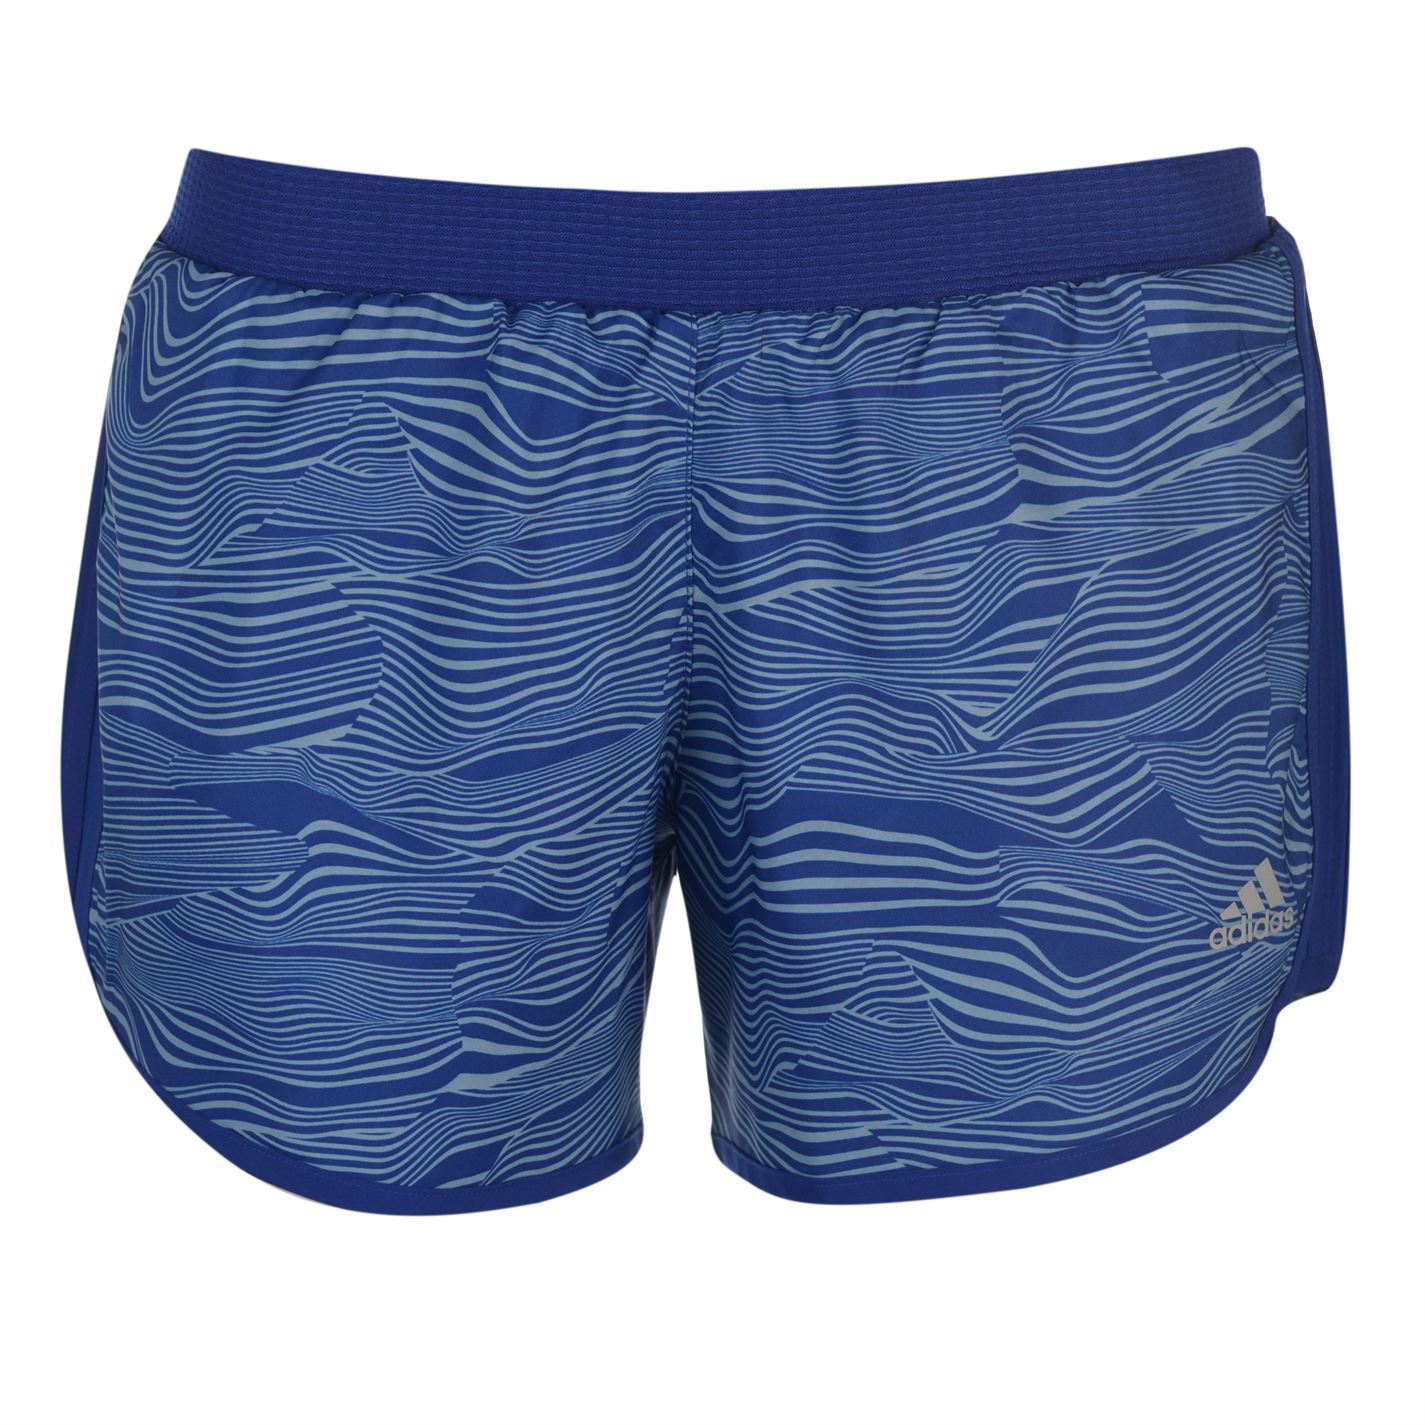 98e5ebad3300 Image is loading adidas-Womens-M10-Shorts-Performance-Pants-Trousers-Bottoms